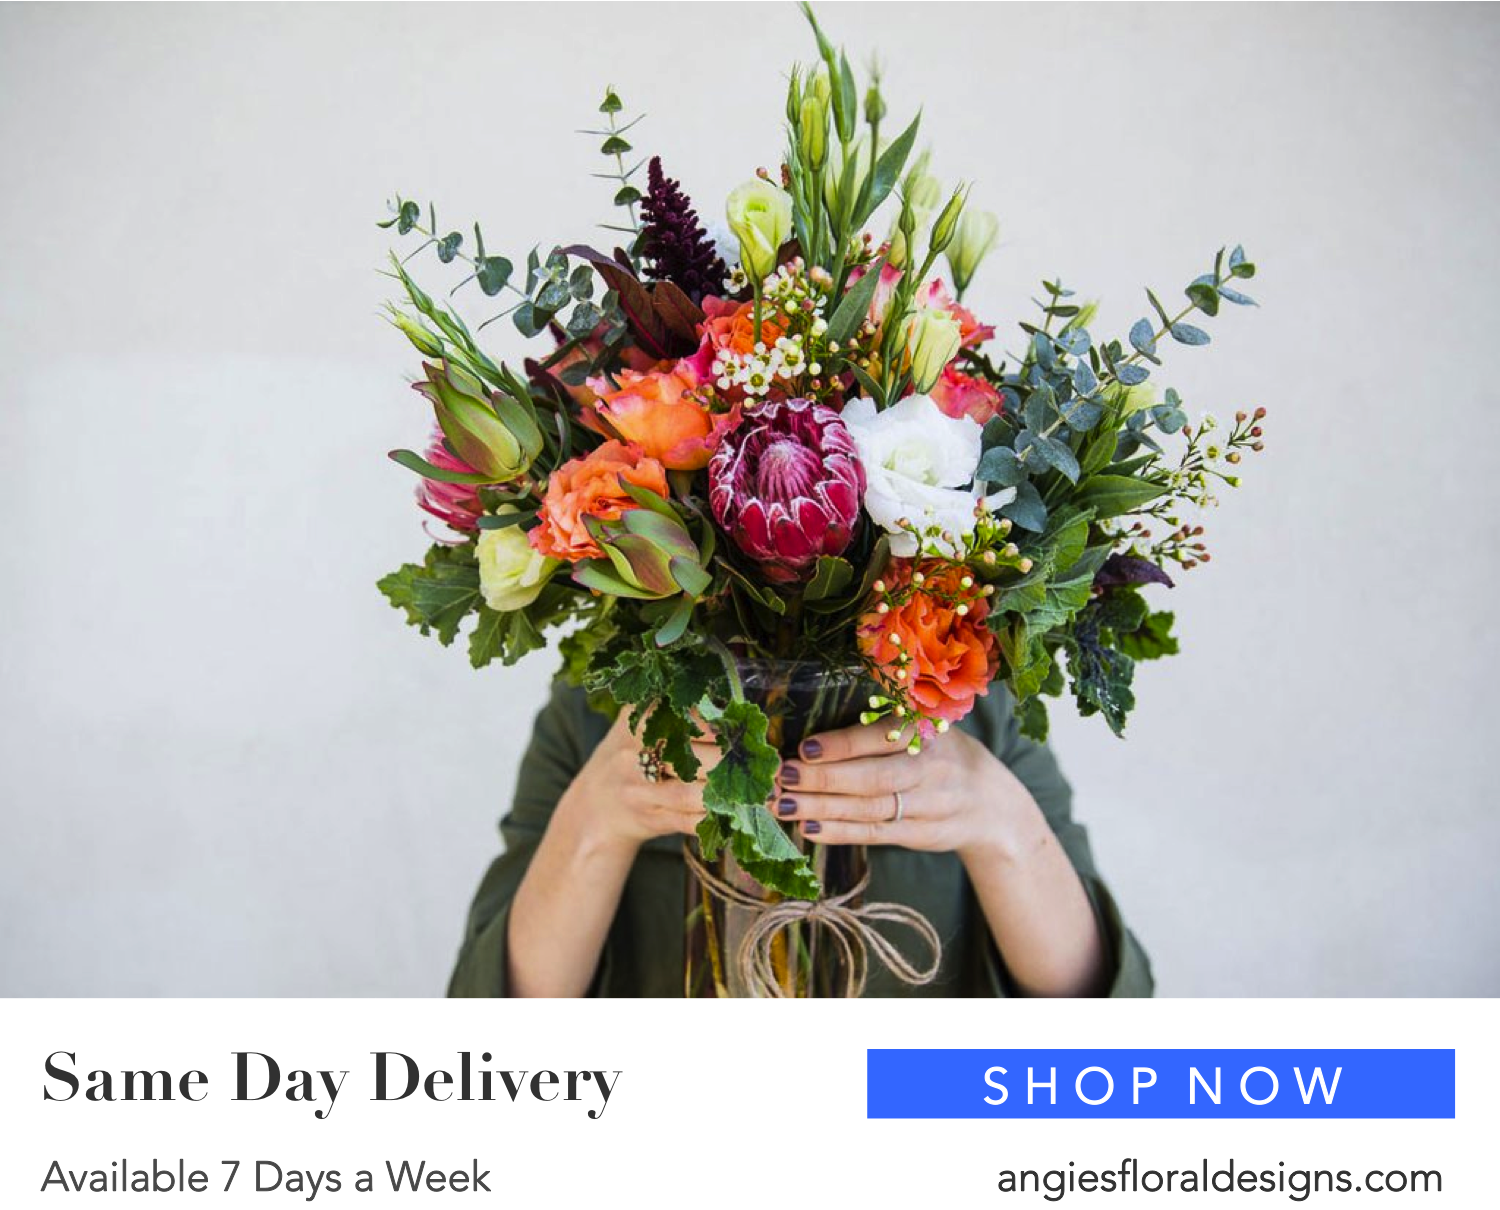 0-angies-floral-desig-n-a-n-nn-i-v-ersary-send-gifts-79912-handcrafted-gifts-same-day-delivery-roses-flowershop-el-paso-texas-79912-shop-online-flowers-florist-best-florist.png